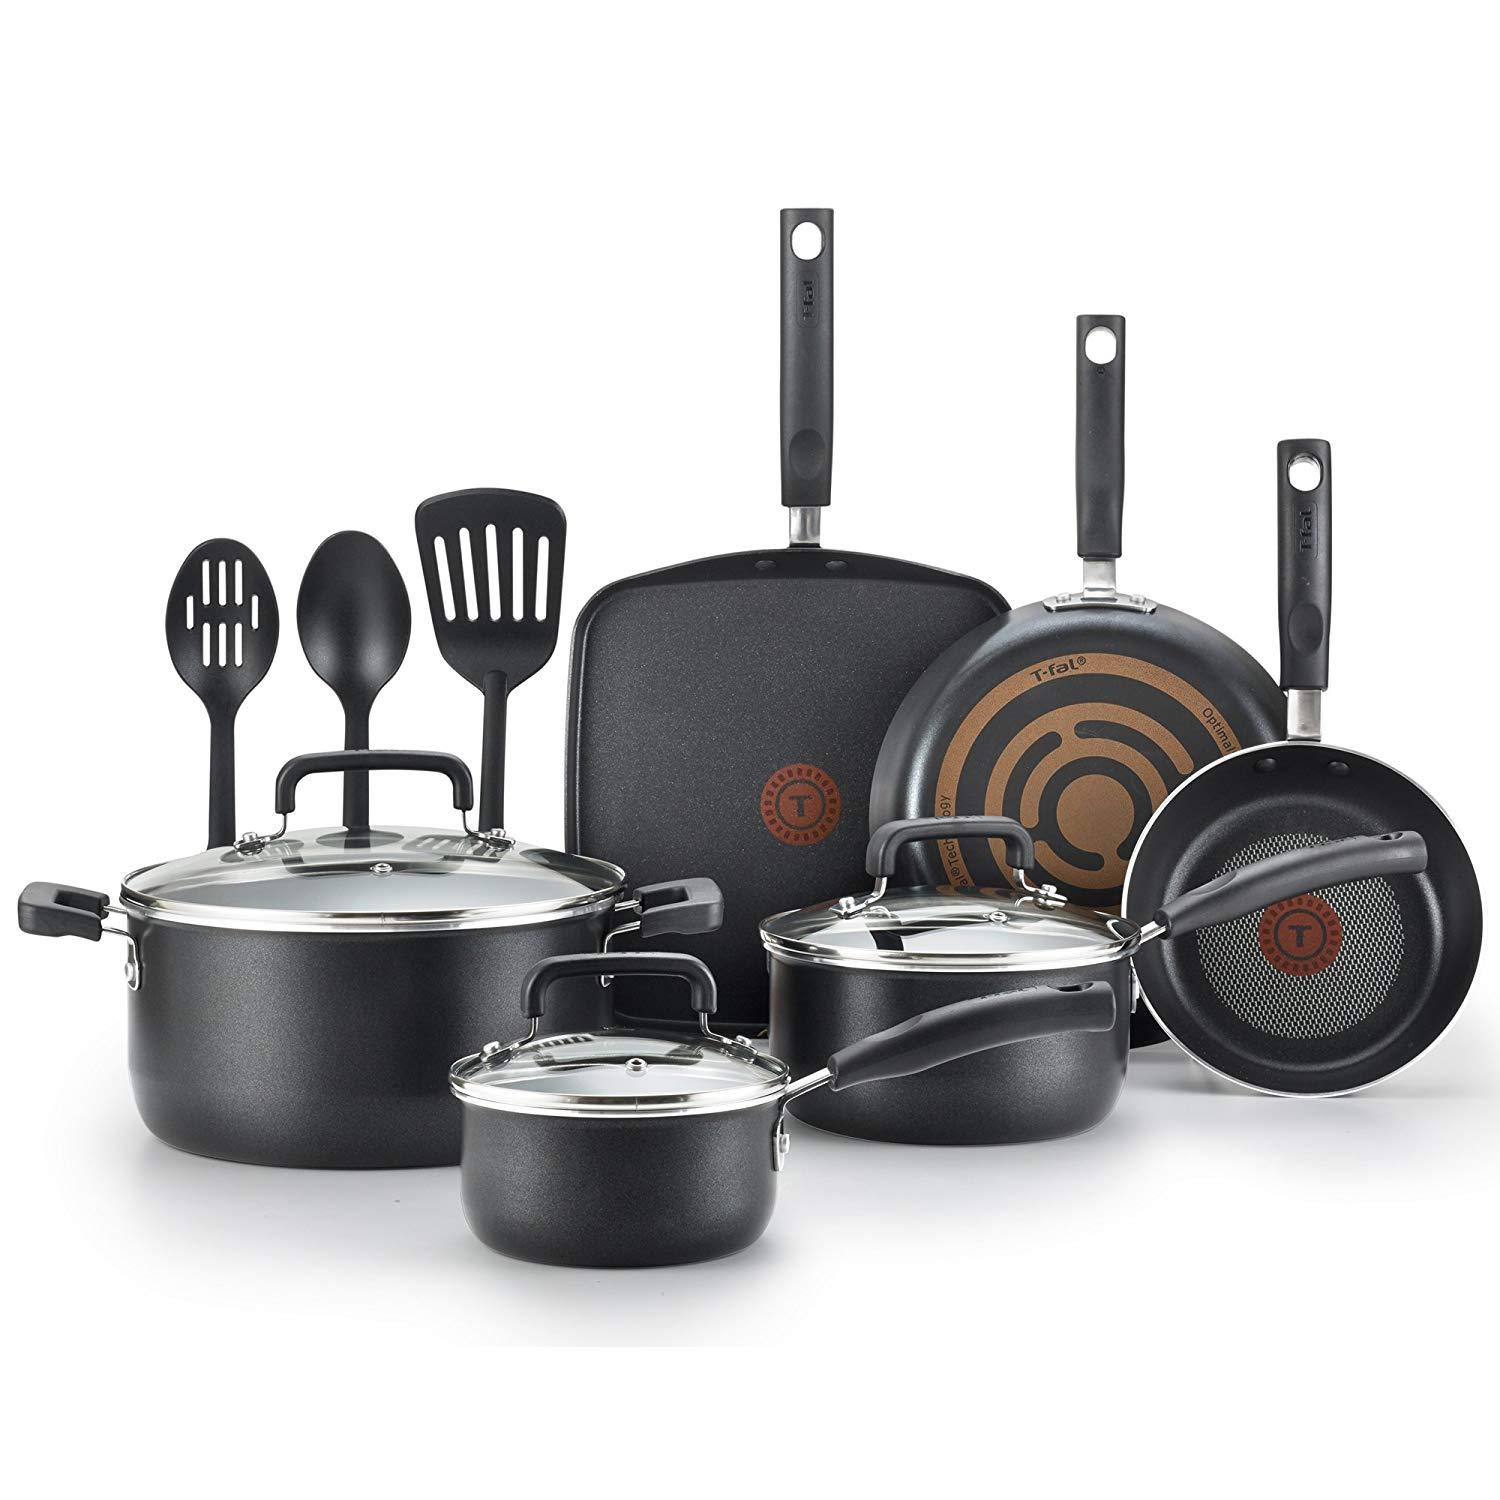 T-Fal Signature Nonstick Expert Thermo-Spot Heat Indicator Dishwasher Safe Cookware Set, 12-Piece, Black By Ria Electrostore.